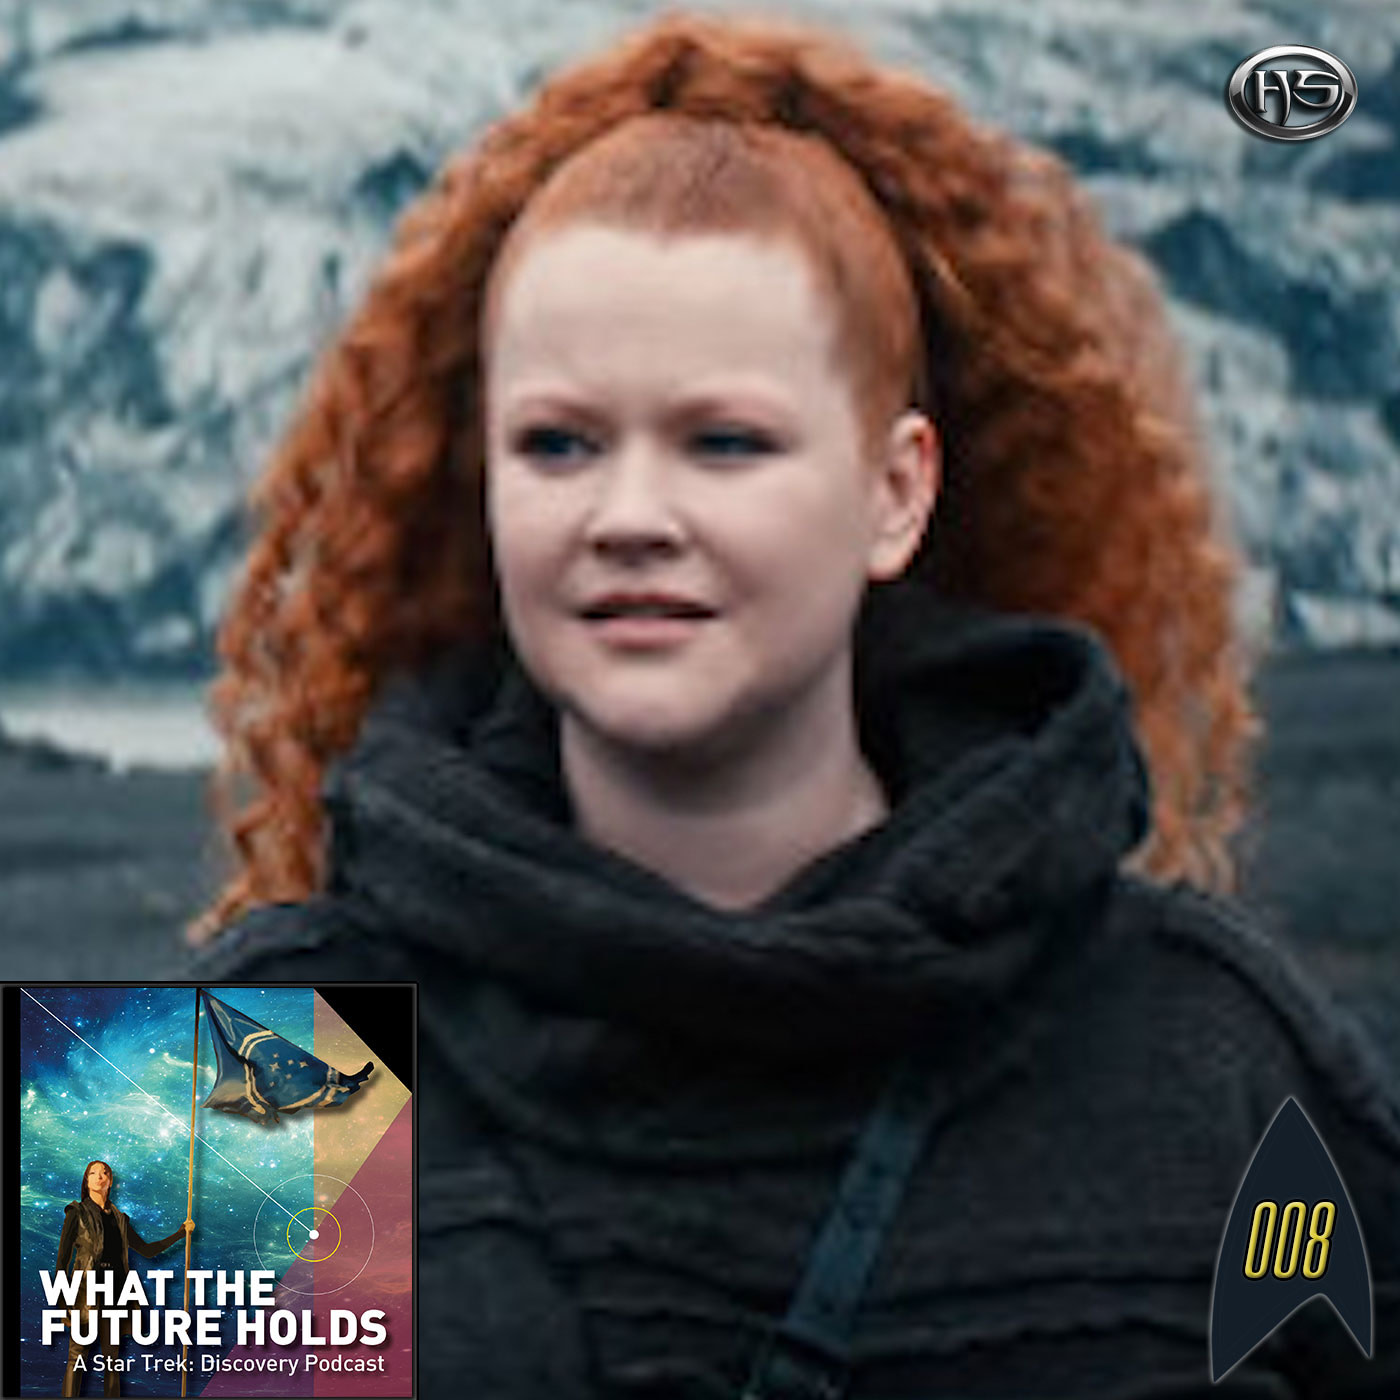 What The Future Holds Episode 8